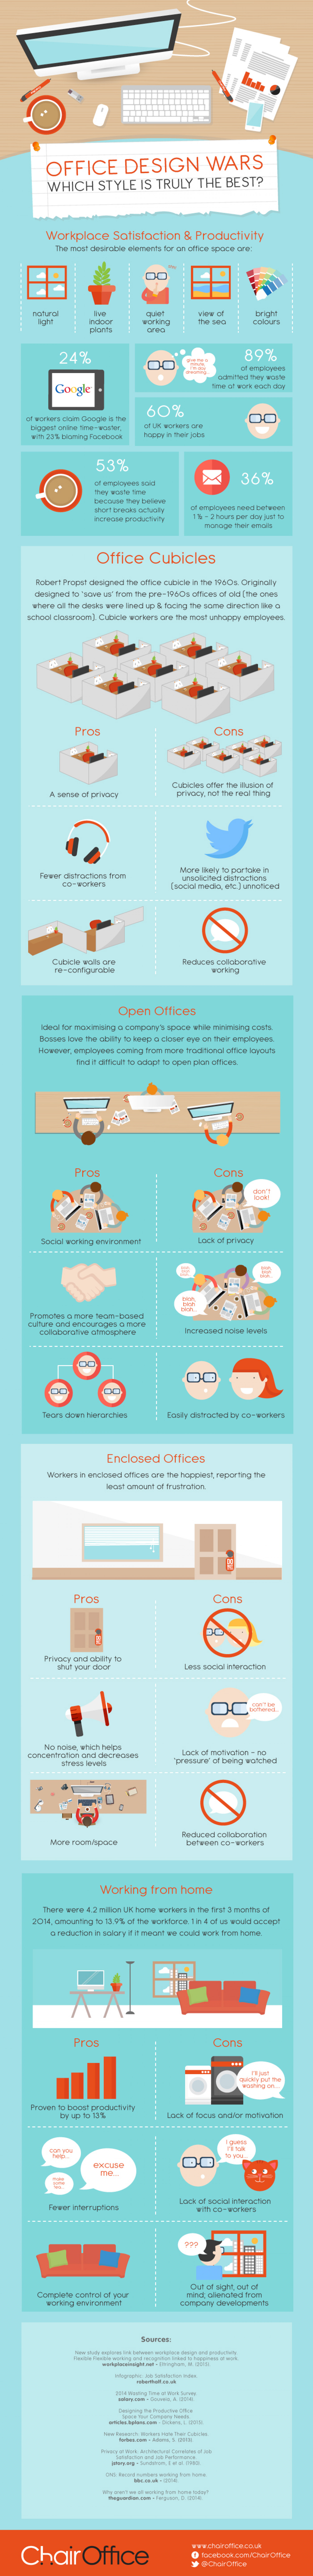 Office Design Wars: Which Style is Truly the Best? Infographic